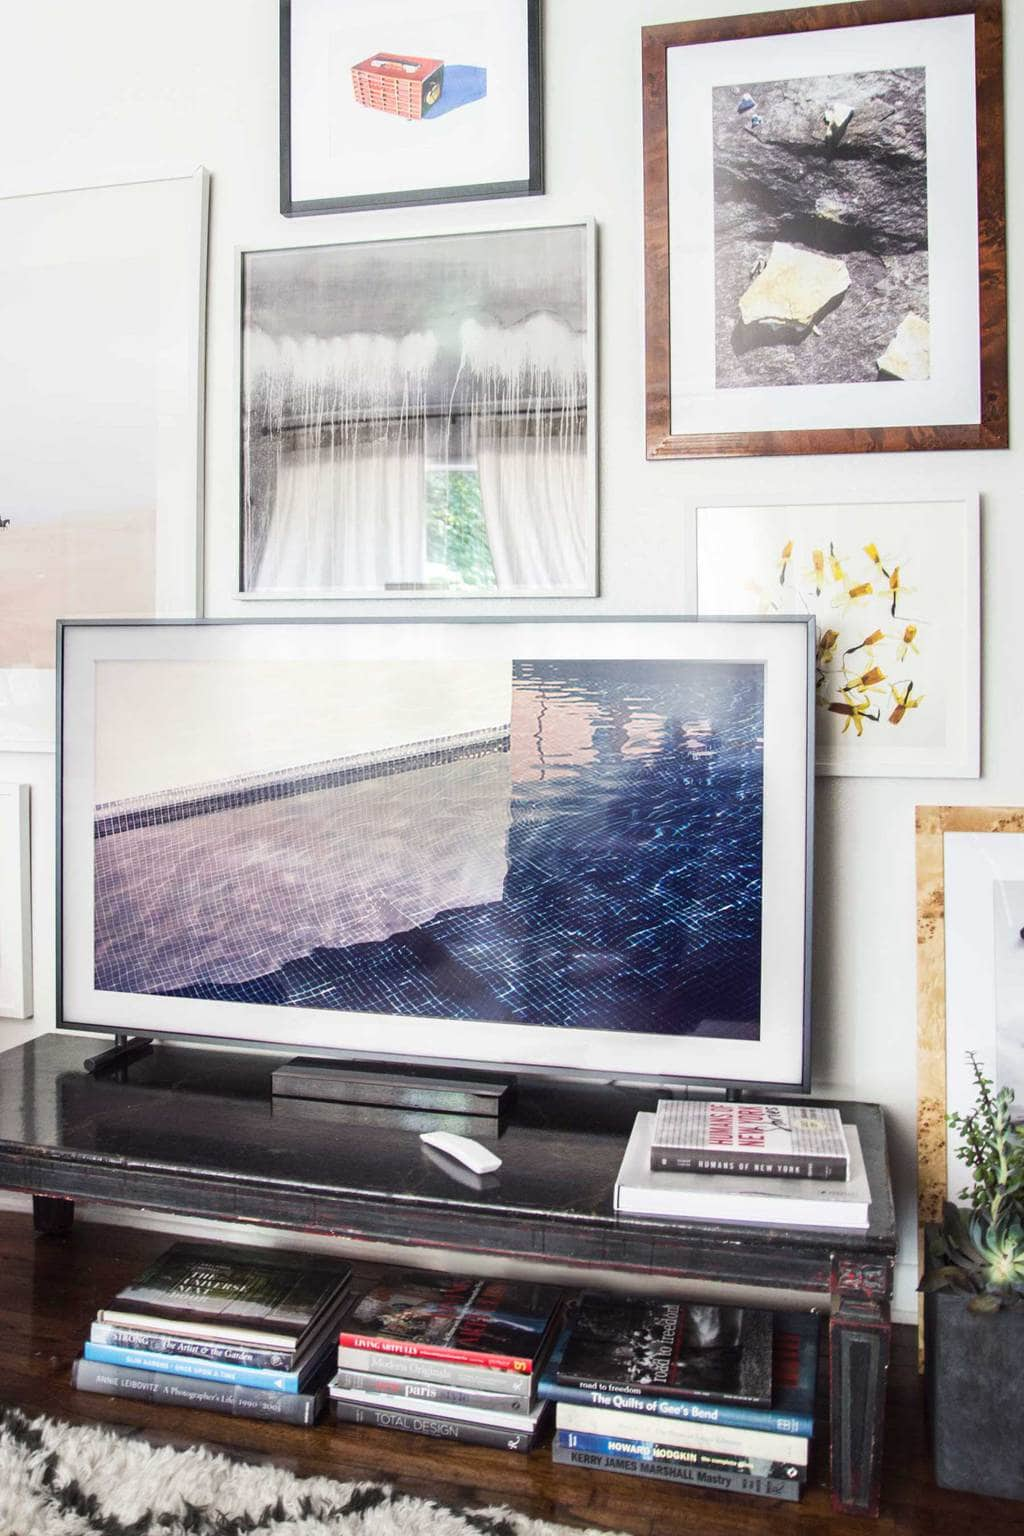 Framed TV screen with gallery wall and curated art selection for The Frame by Samsung on Thou Swell @thouswellblog